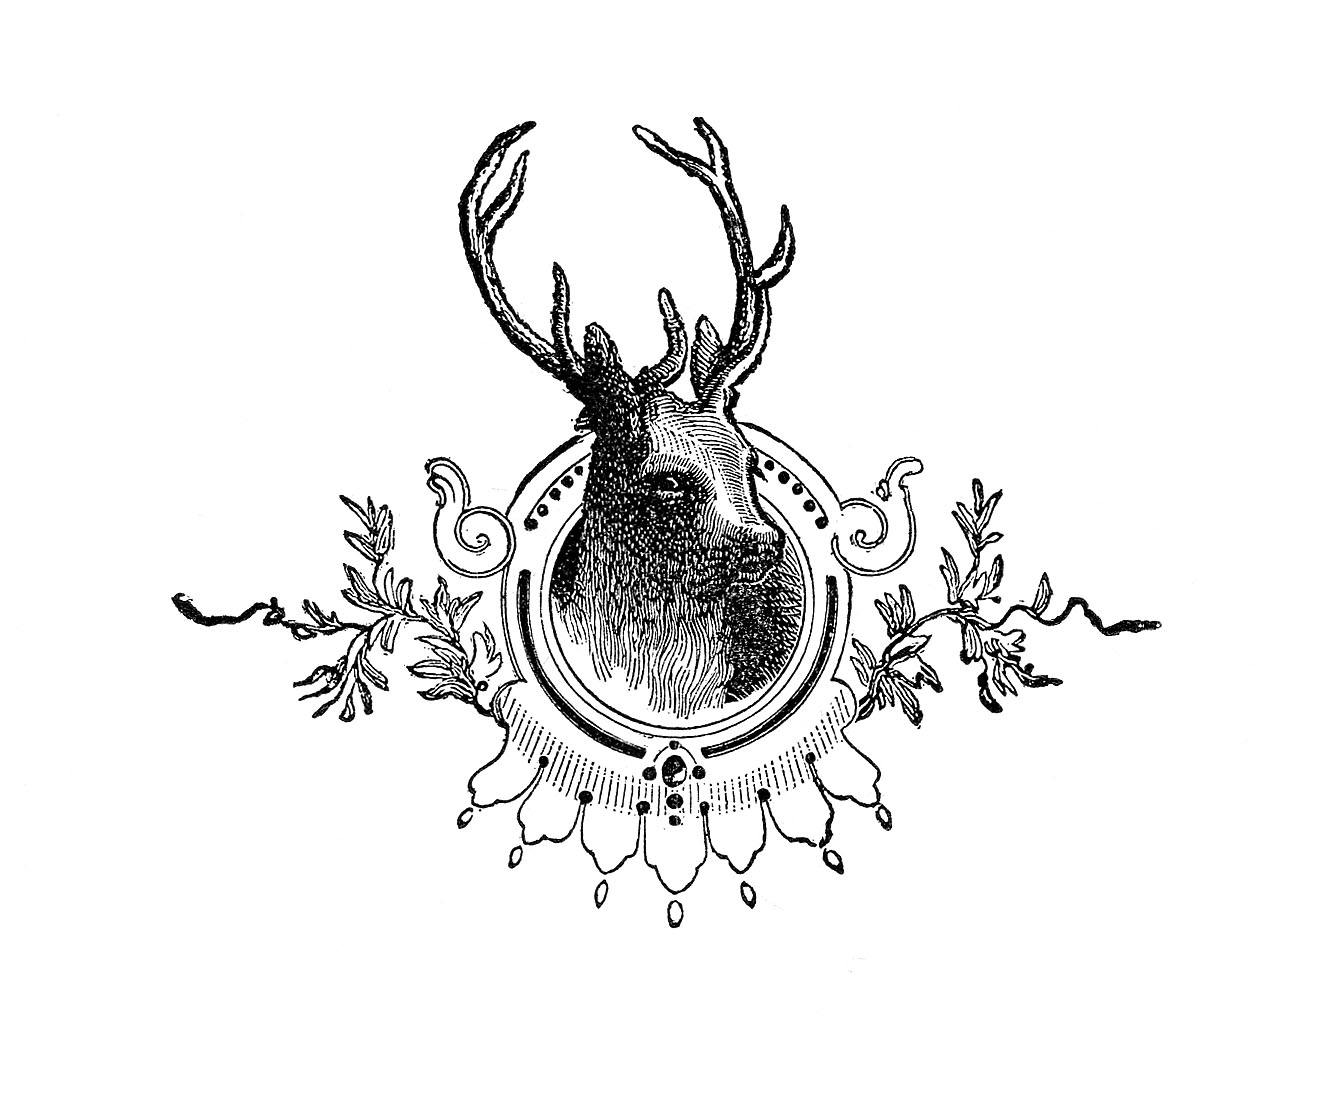 Engraving clipart ornament Book Deer Deer from